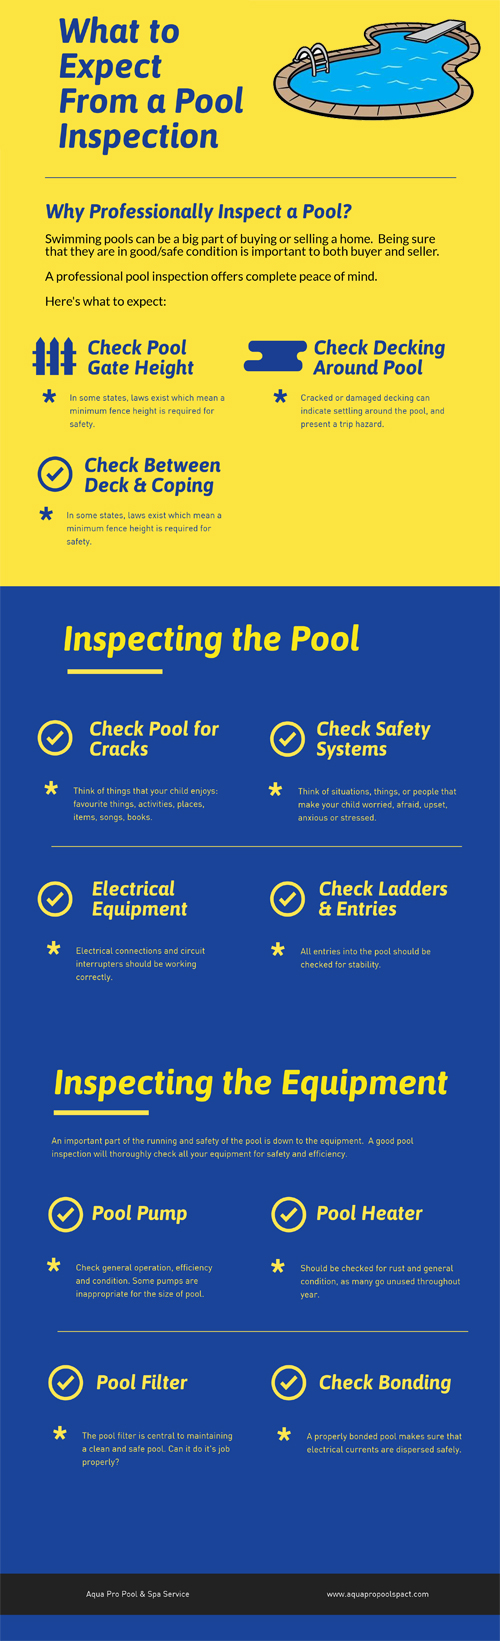 Pool Inspection infographic